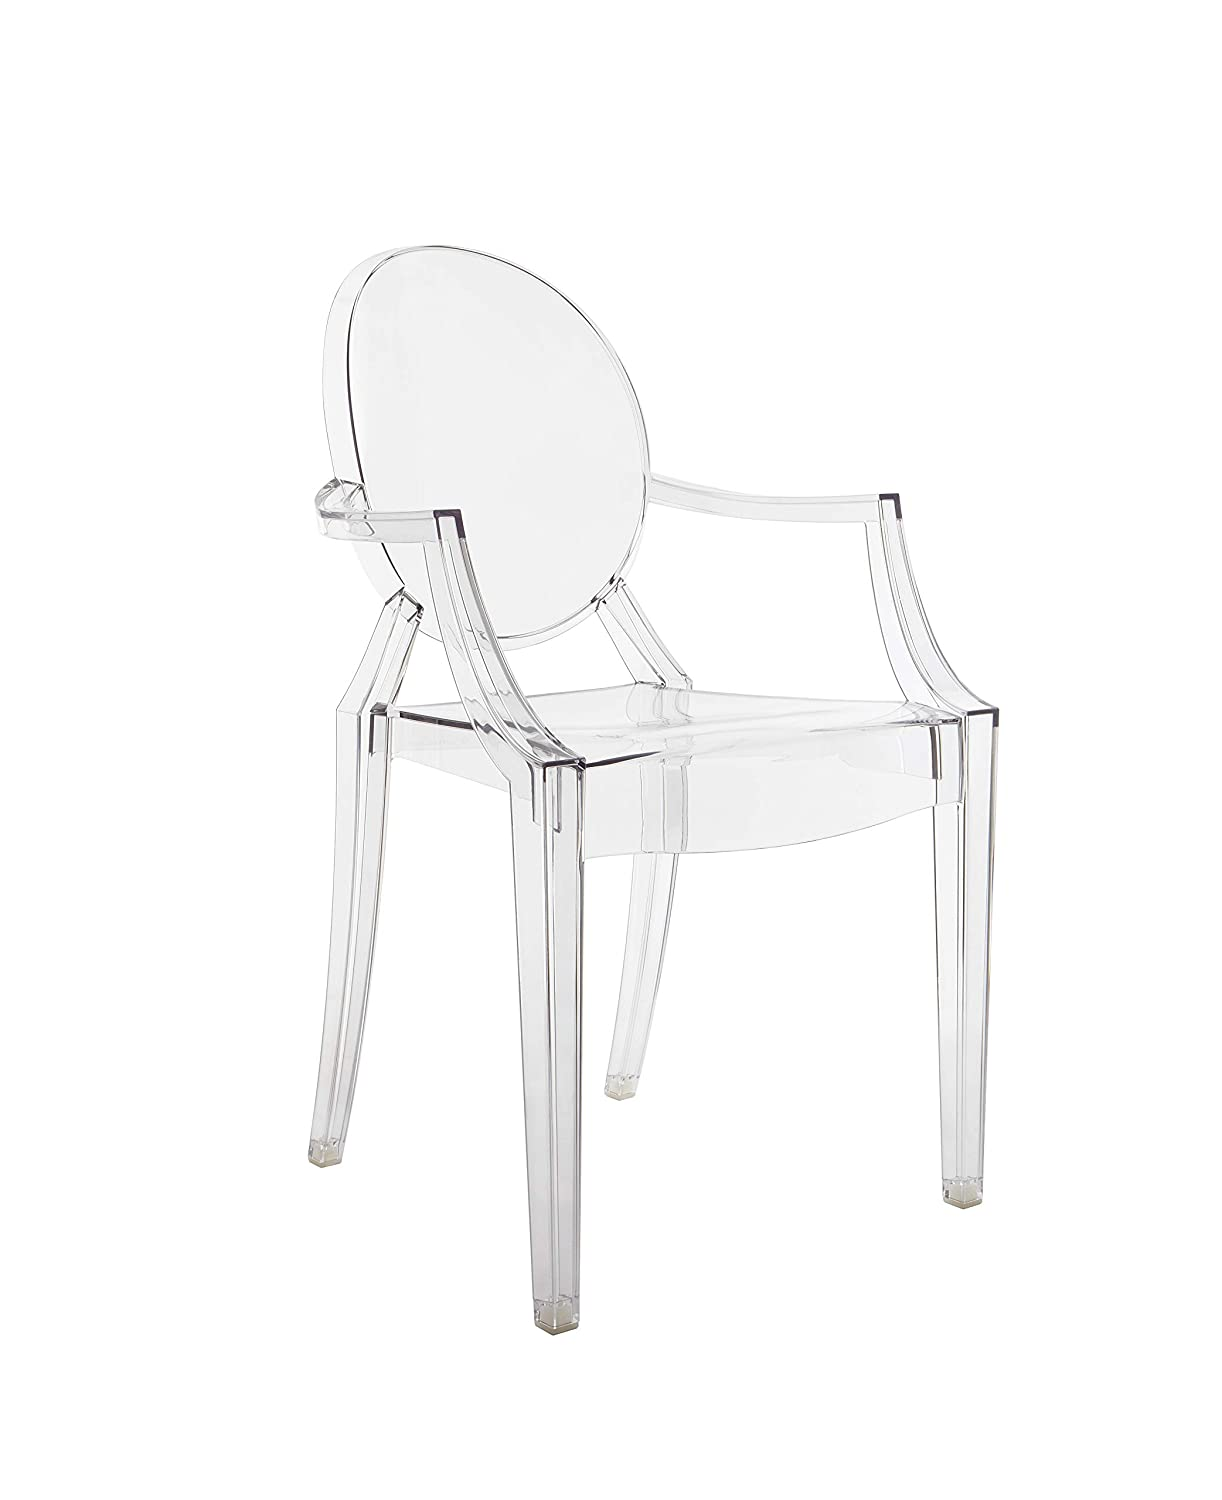 Kartell Louis Ghost Chairs, Blue, 55x54x93 cm 4852/J5